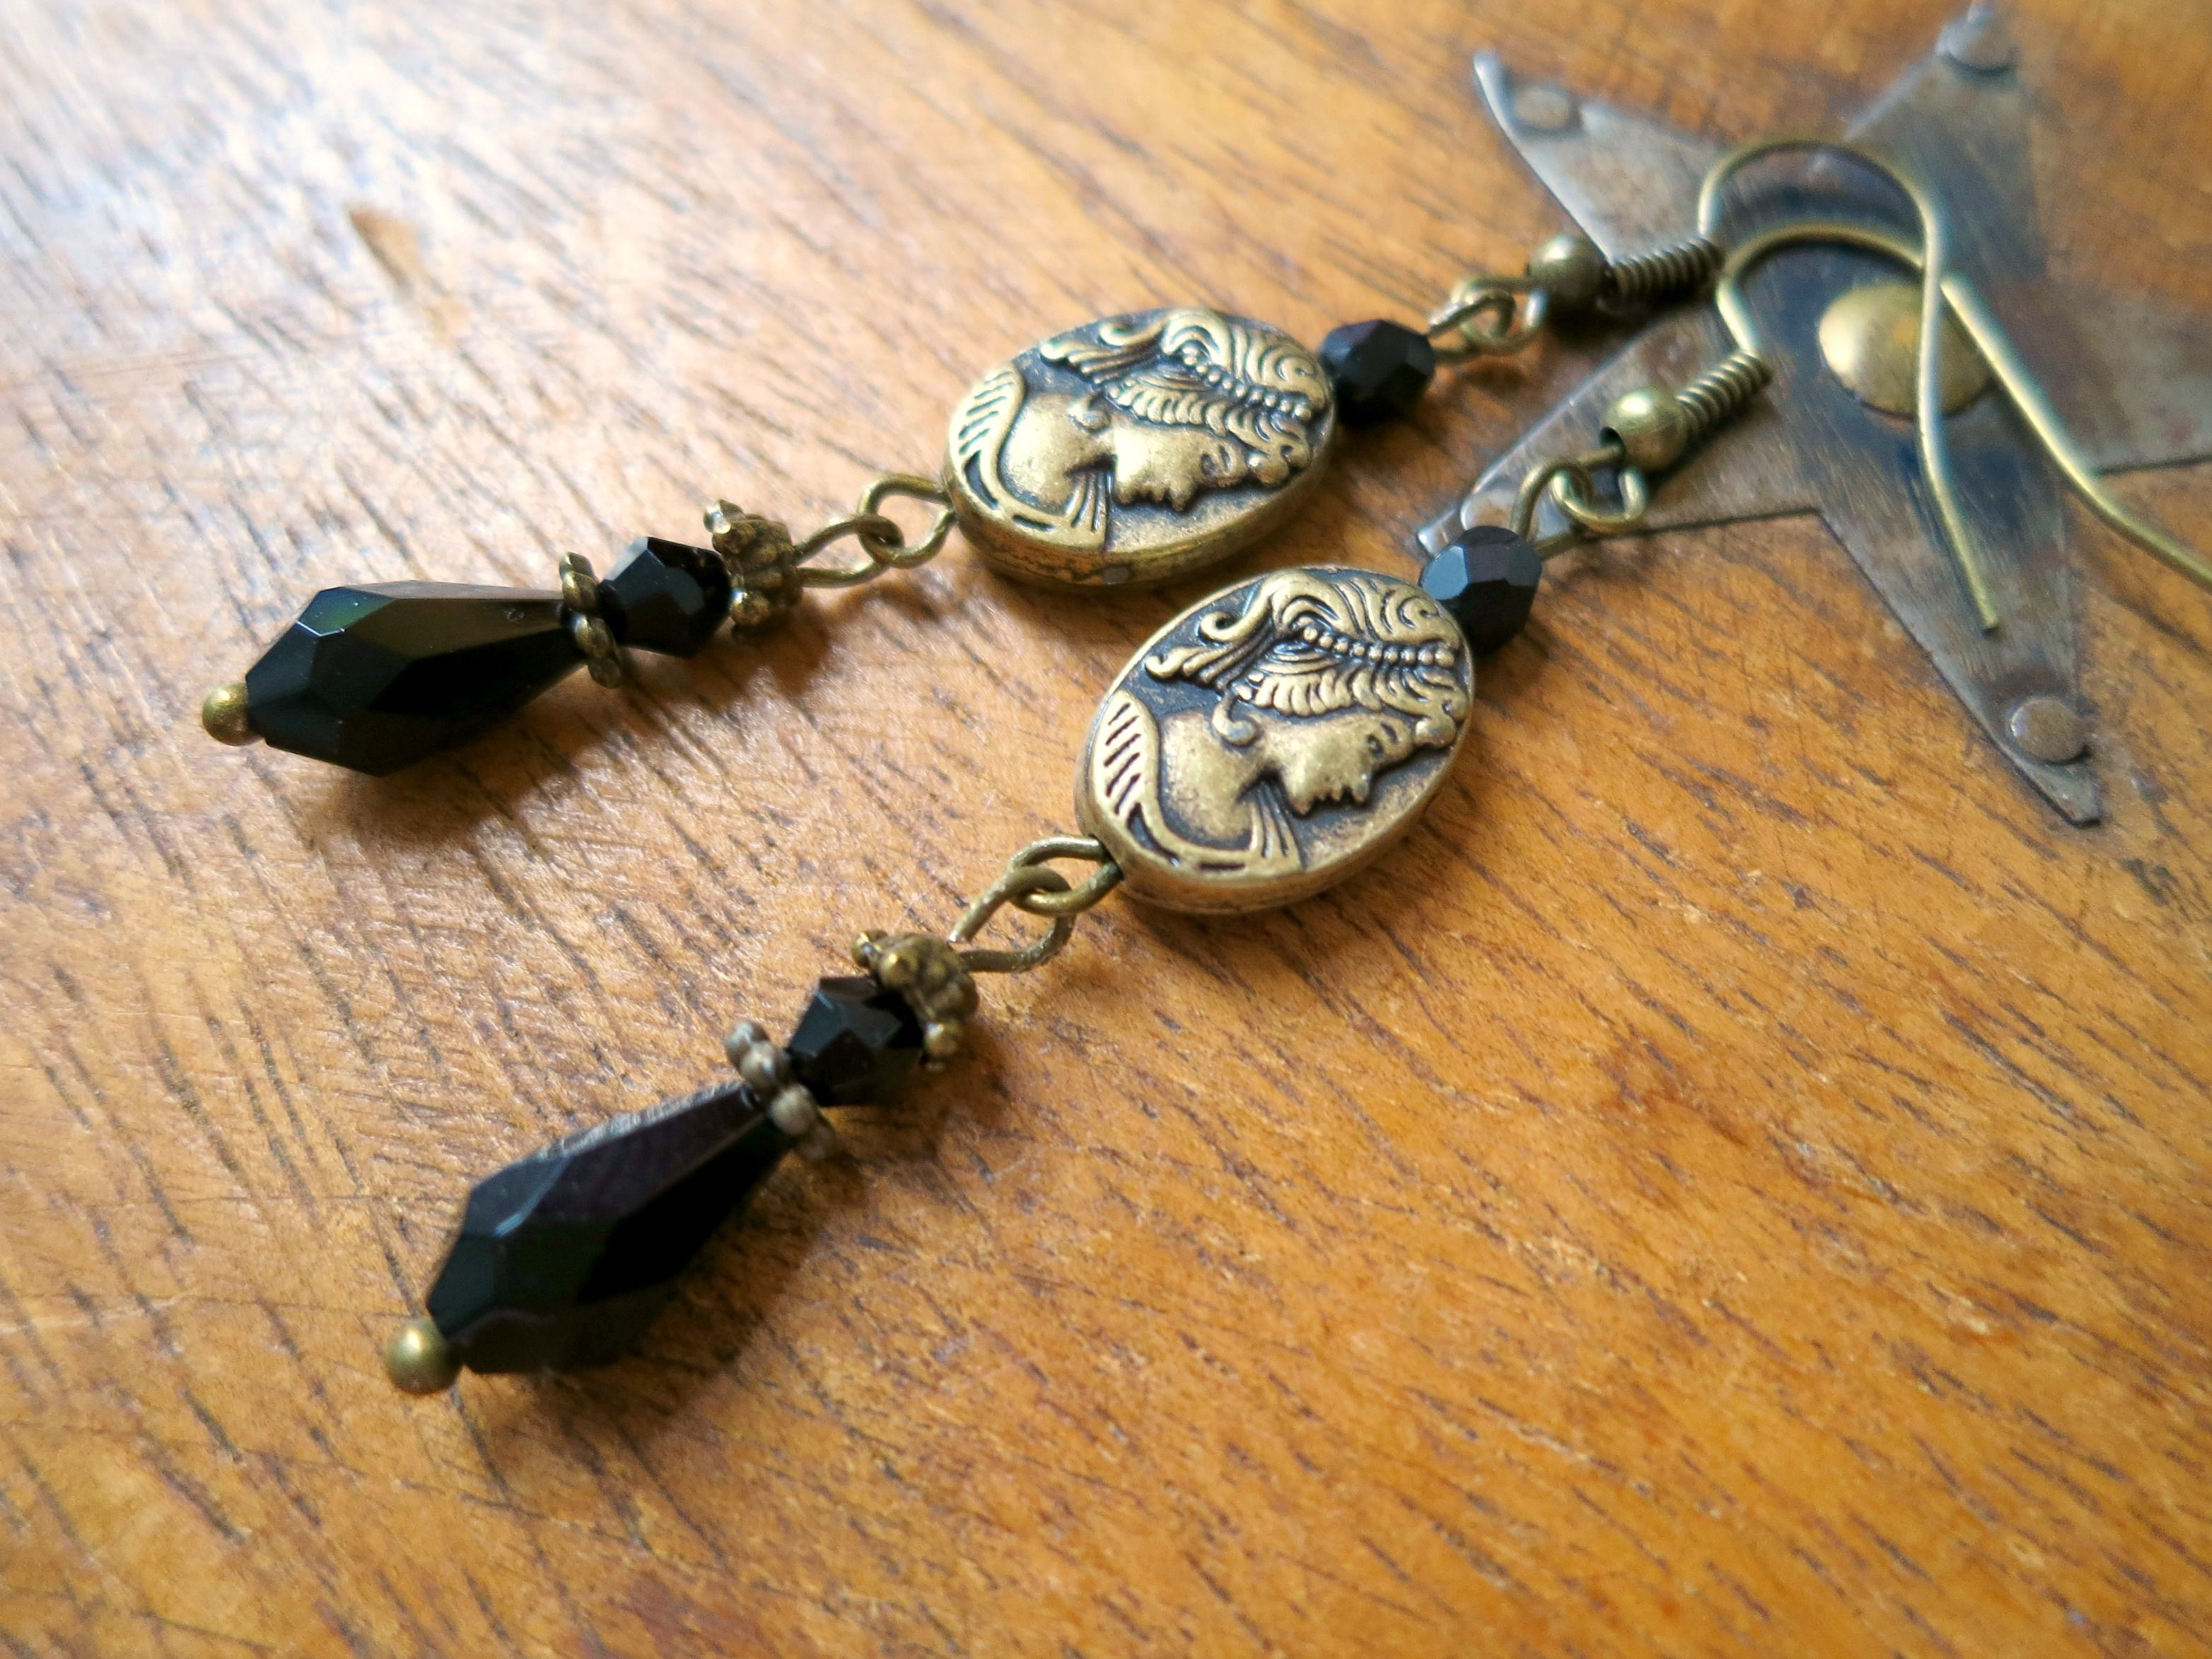 090d42a9a Victorian Revival Beaded Earrings French Jet Black Glass Beads Bas Relief  Grecian Goddess Cameo Style Metal Charms Antiqued Jewelry